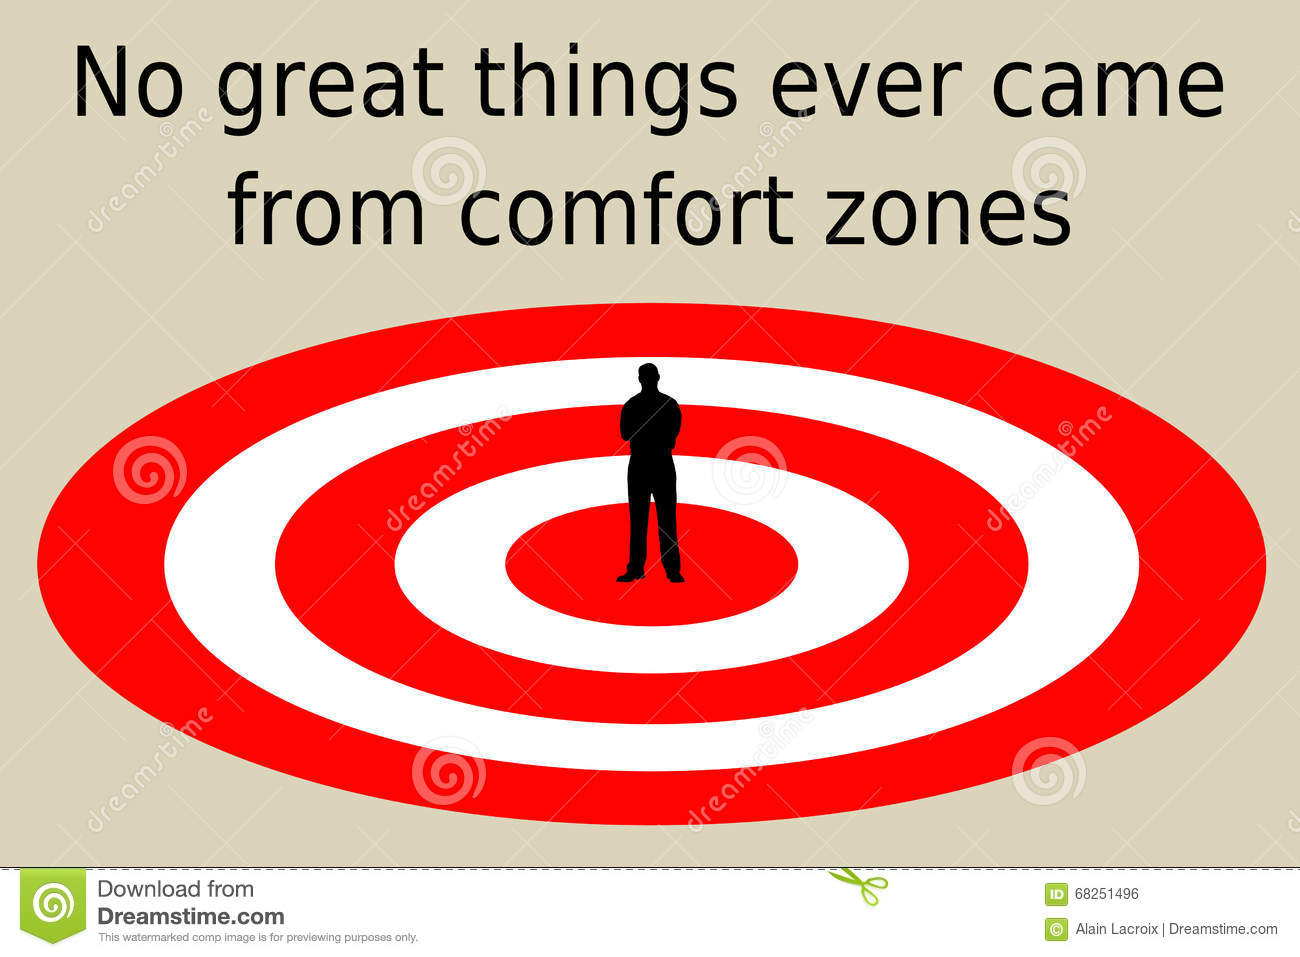 21 Inspiring quotes about moving outside your comfort zone